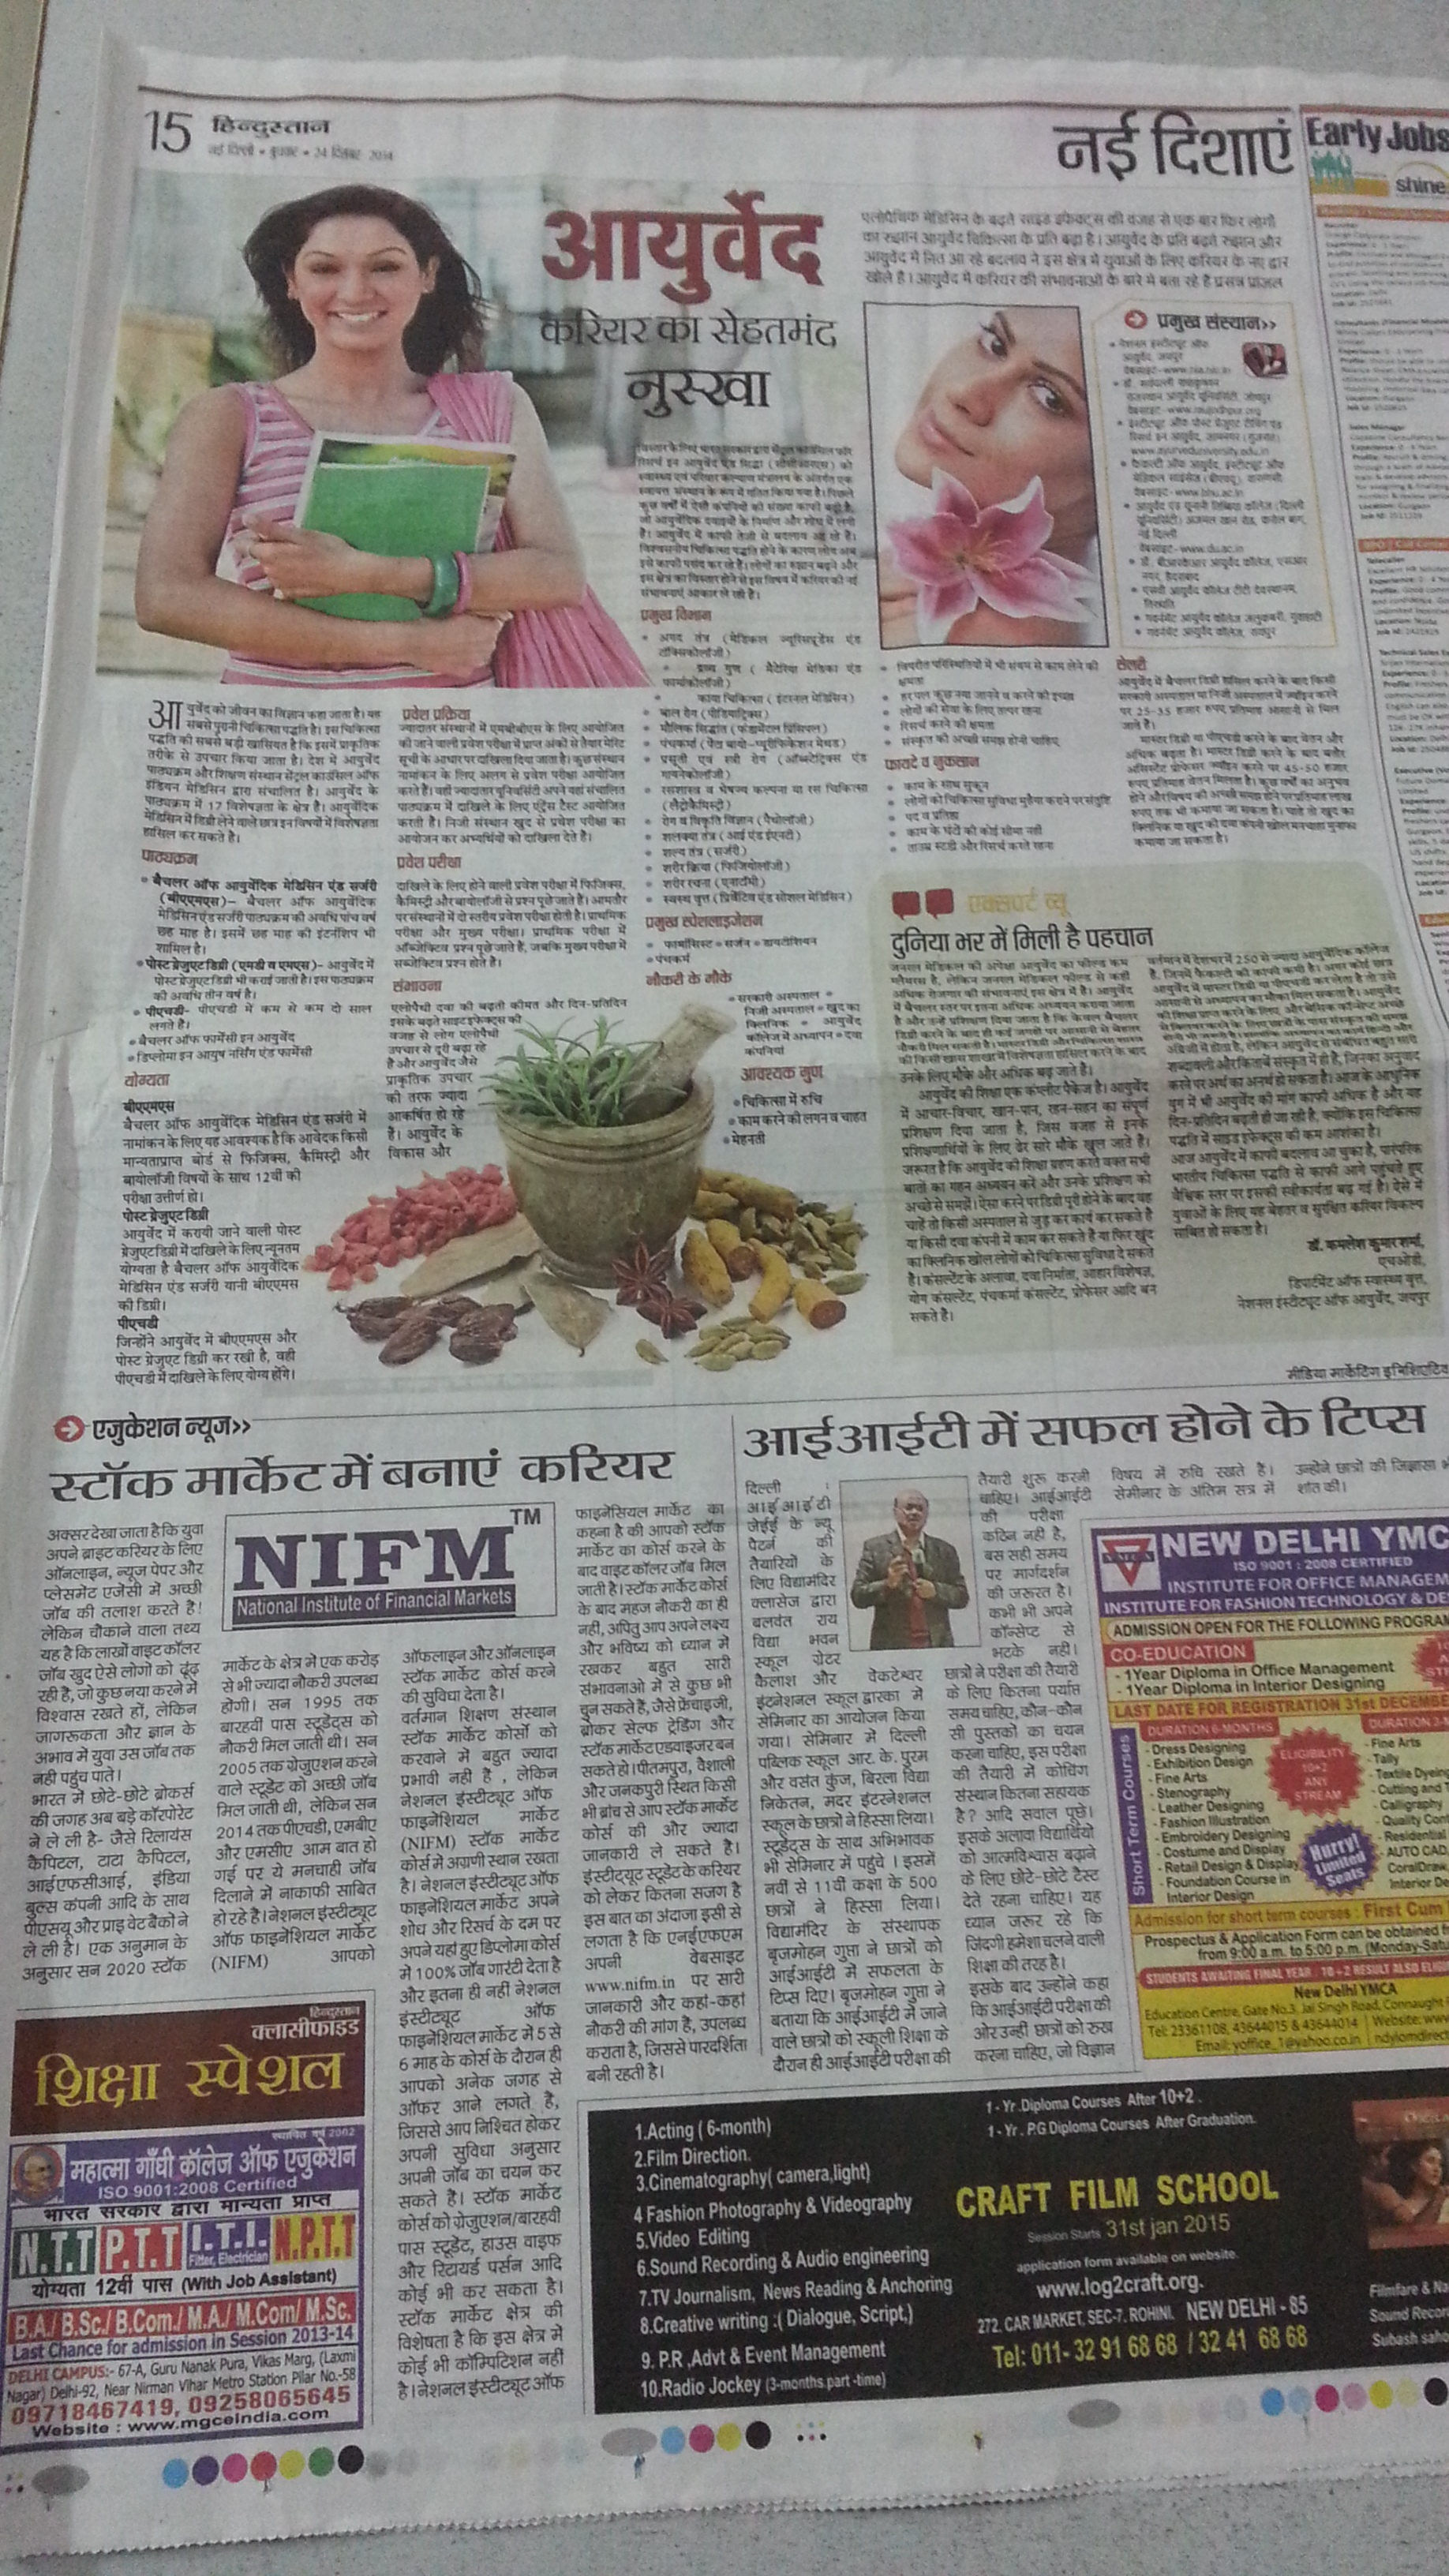 About Career in Stock Market article published in Hindustan Hindi News paper - NIFM